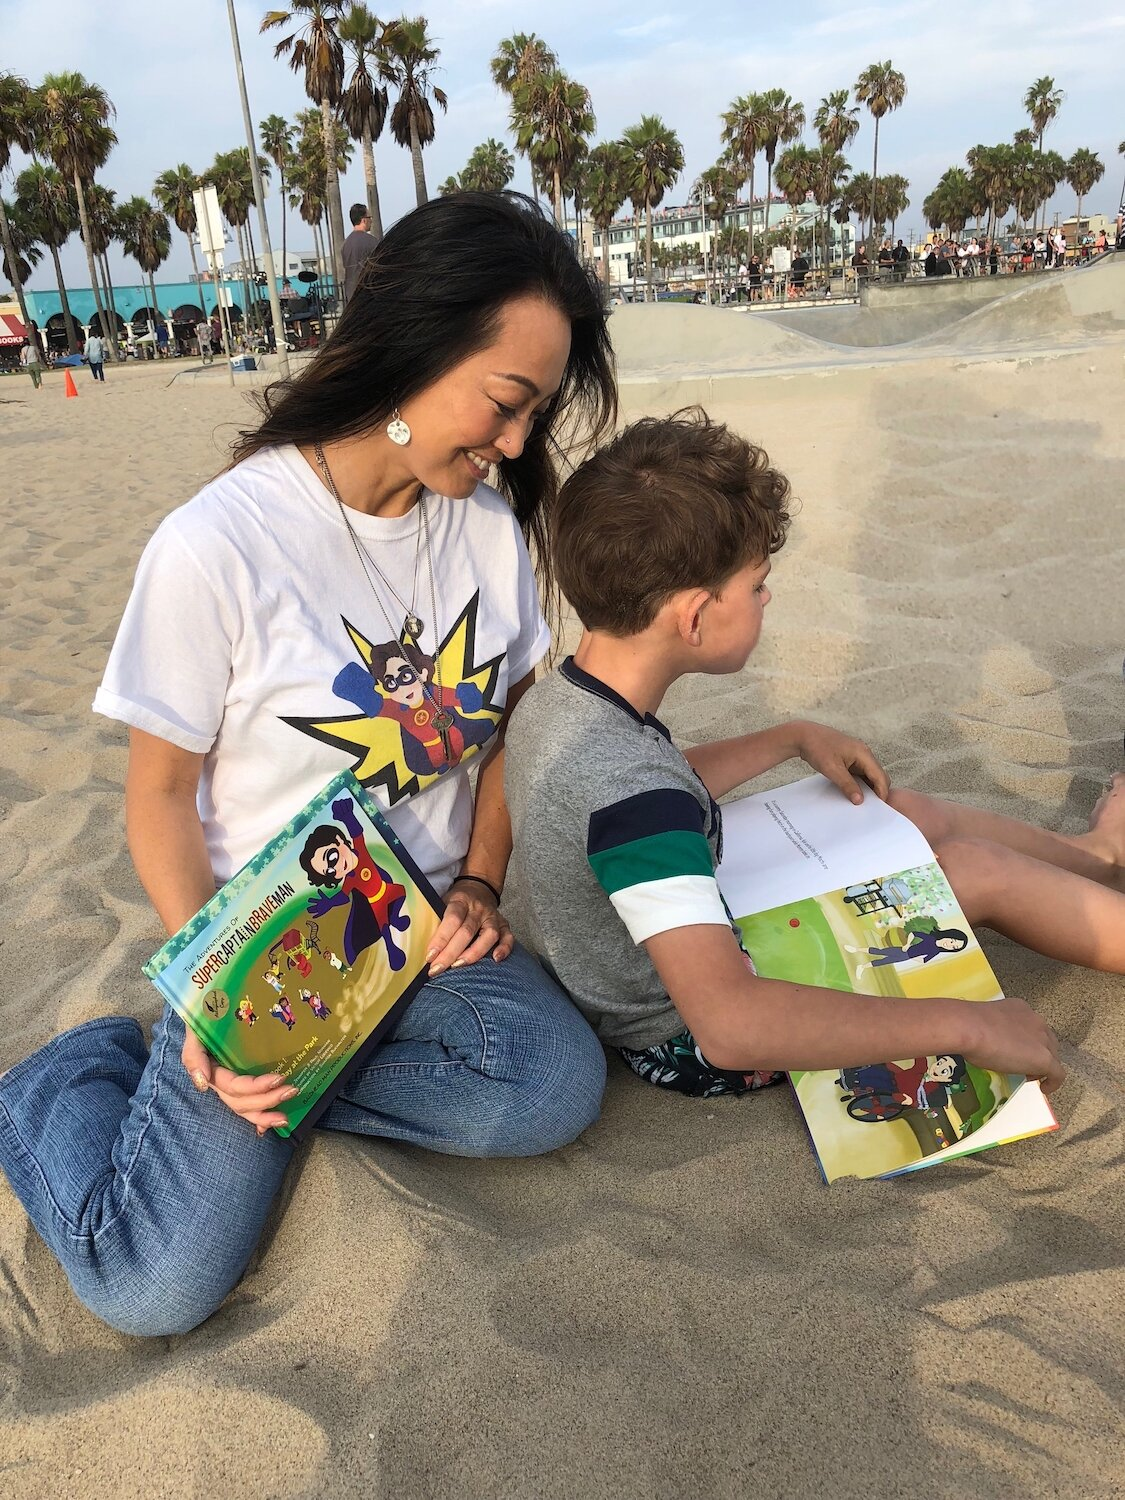 JENNIFER NORMAN with gavin mchugh, venice beach. cerebral palsy doesn't stop gavin from surfing or pursuing his dreams.